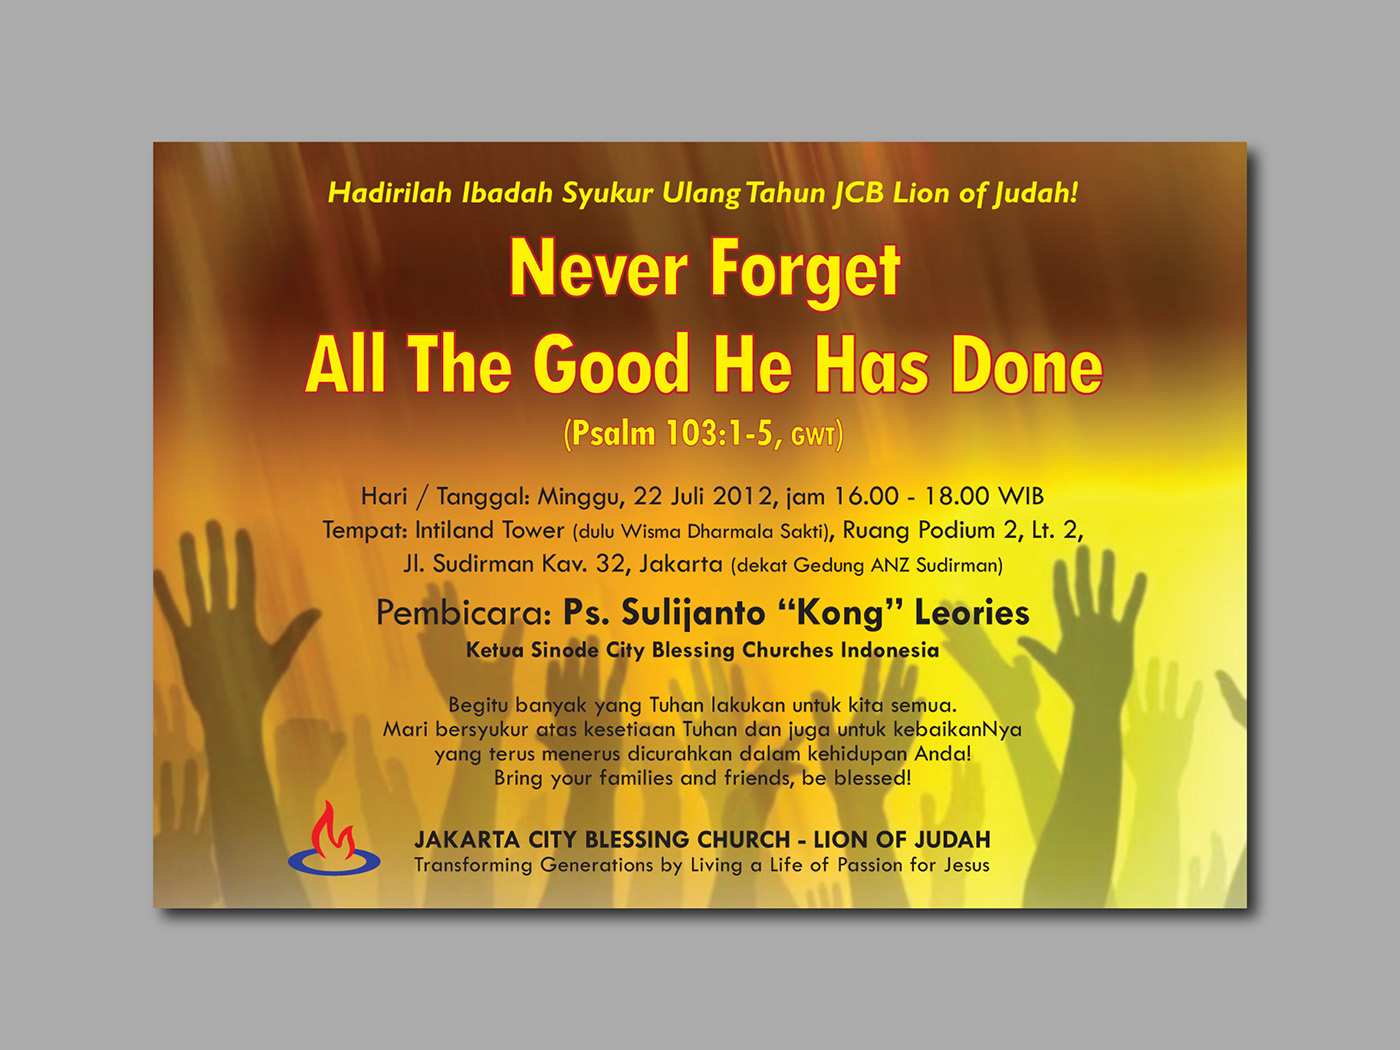 flyer designs jcb lion of judah on behance anniversary invitation flyer organization jakarta city blessing lion of judah title never forget all the good he has done year 2012